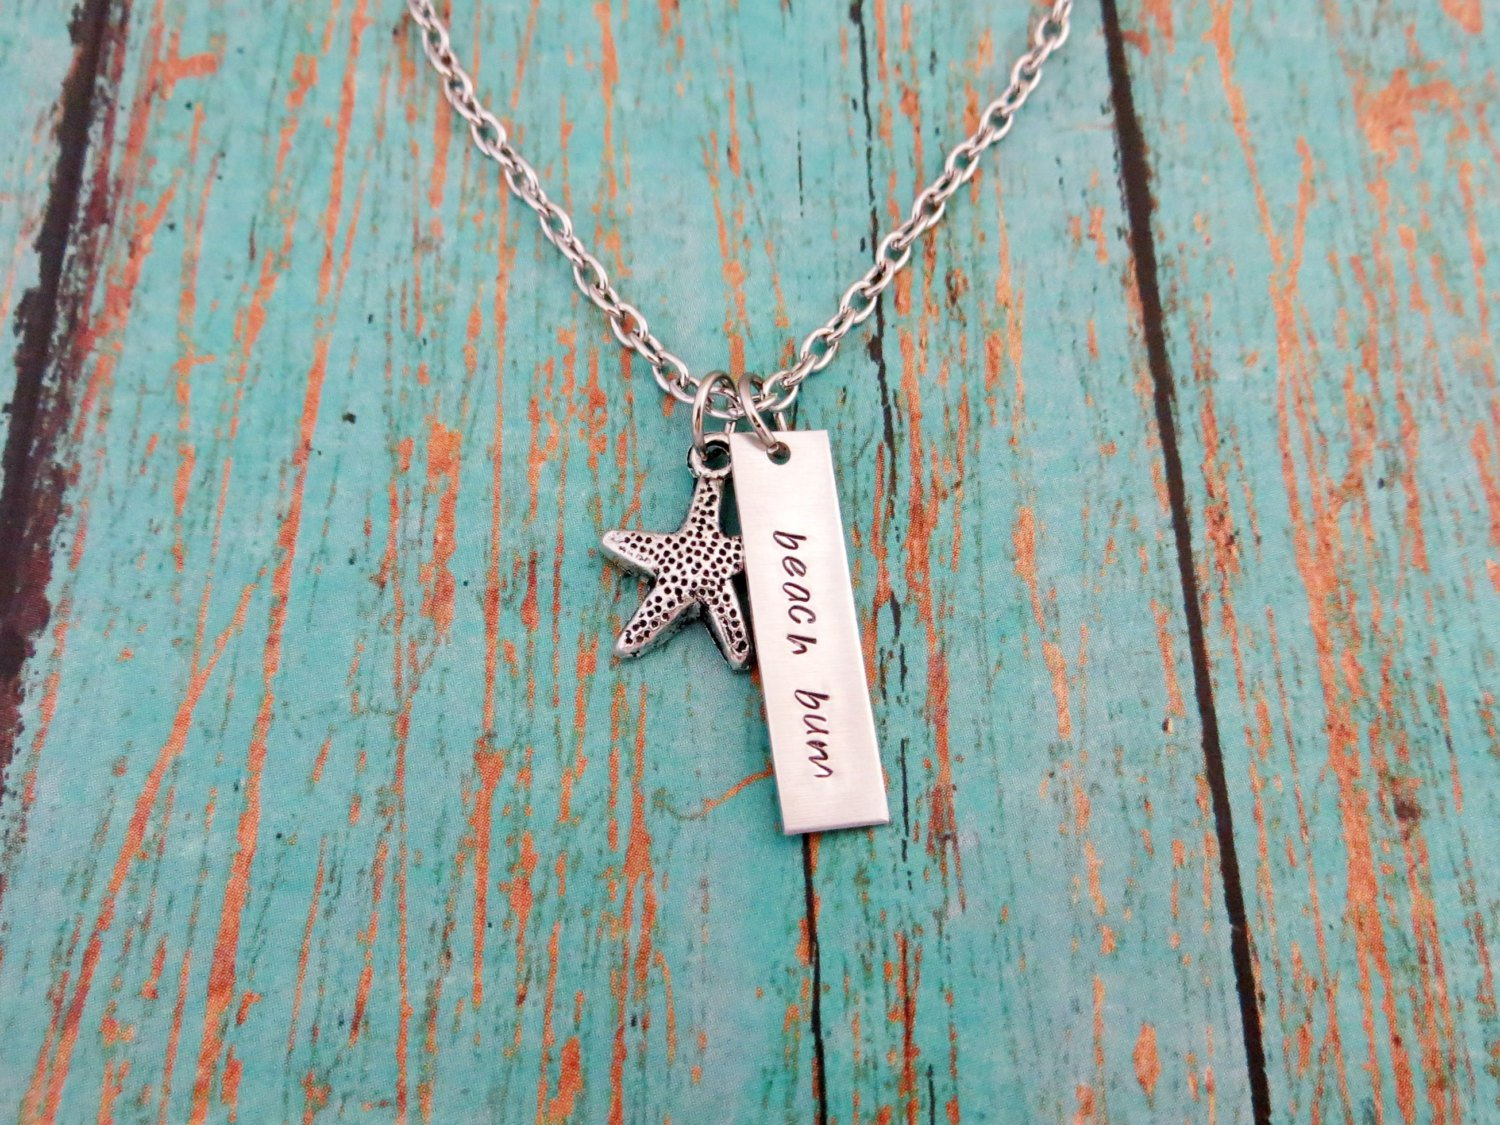 Beach Bum Hand Stamped Necklace With Starfish Charm (Ocean, Sand, Sea, Silver)